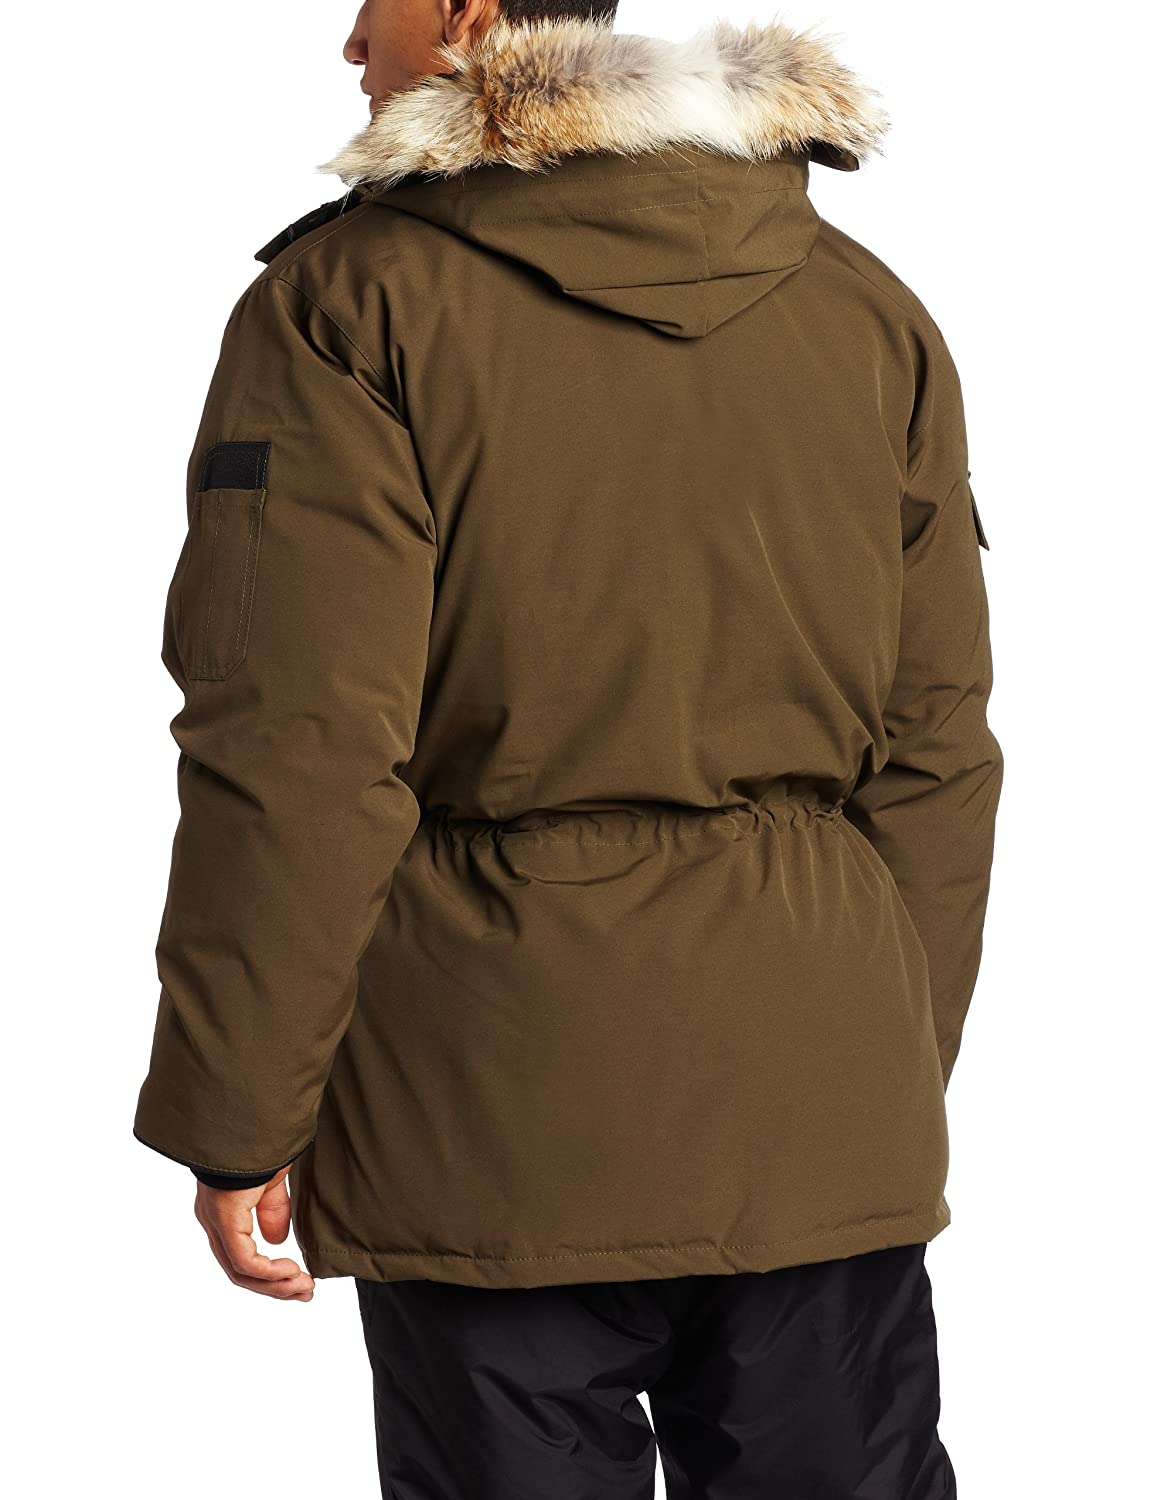 Amazon.com  Canada Goose Men s Expedition Parka Coat  Sports   Outdoors 7670a205cf71